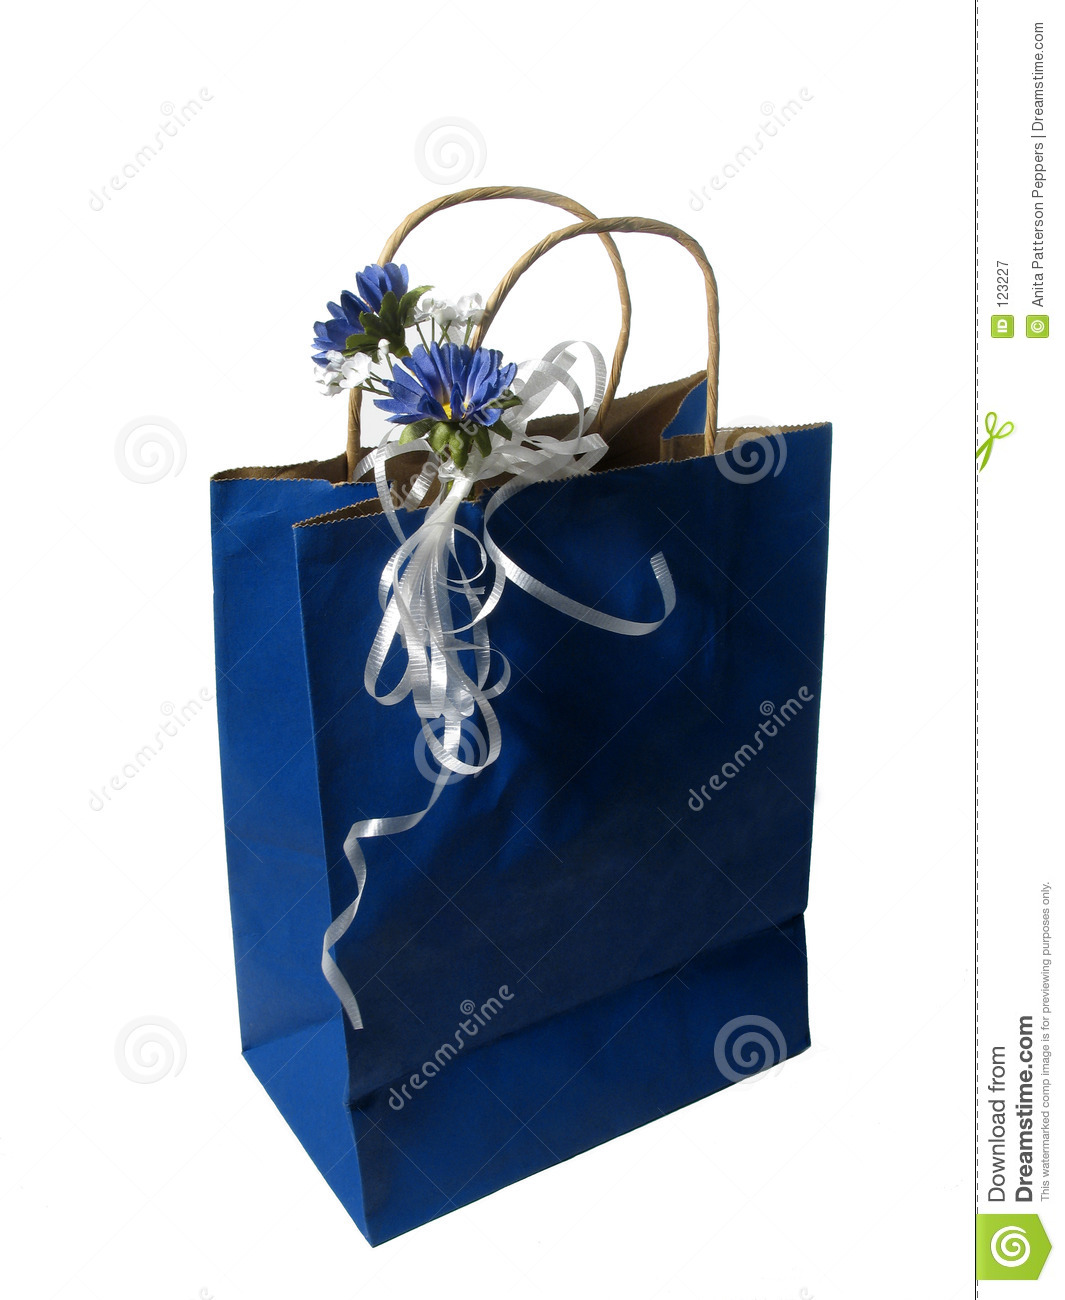 Blue Gift Bag Royalty Free Stock Photography - Image 123227